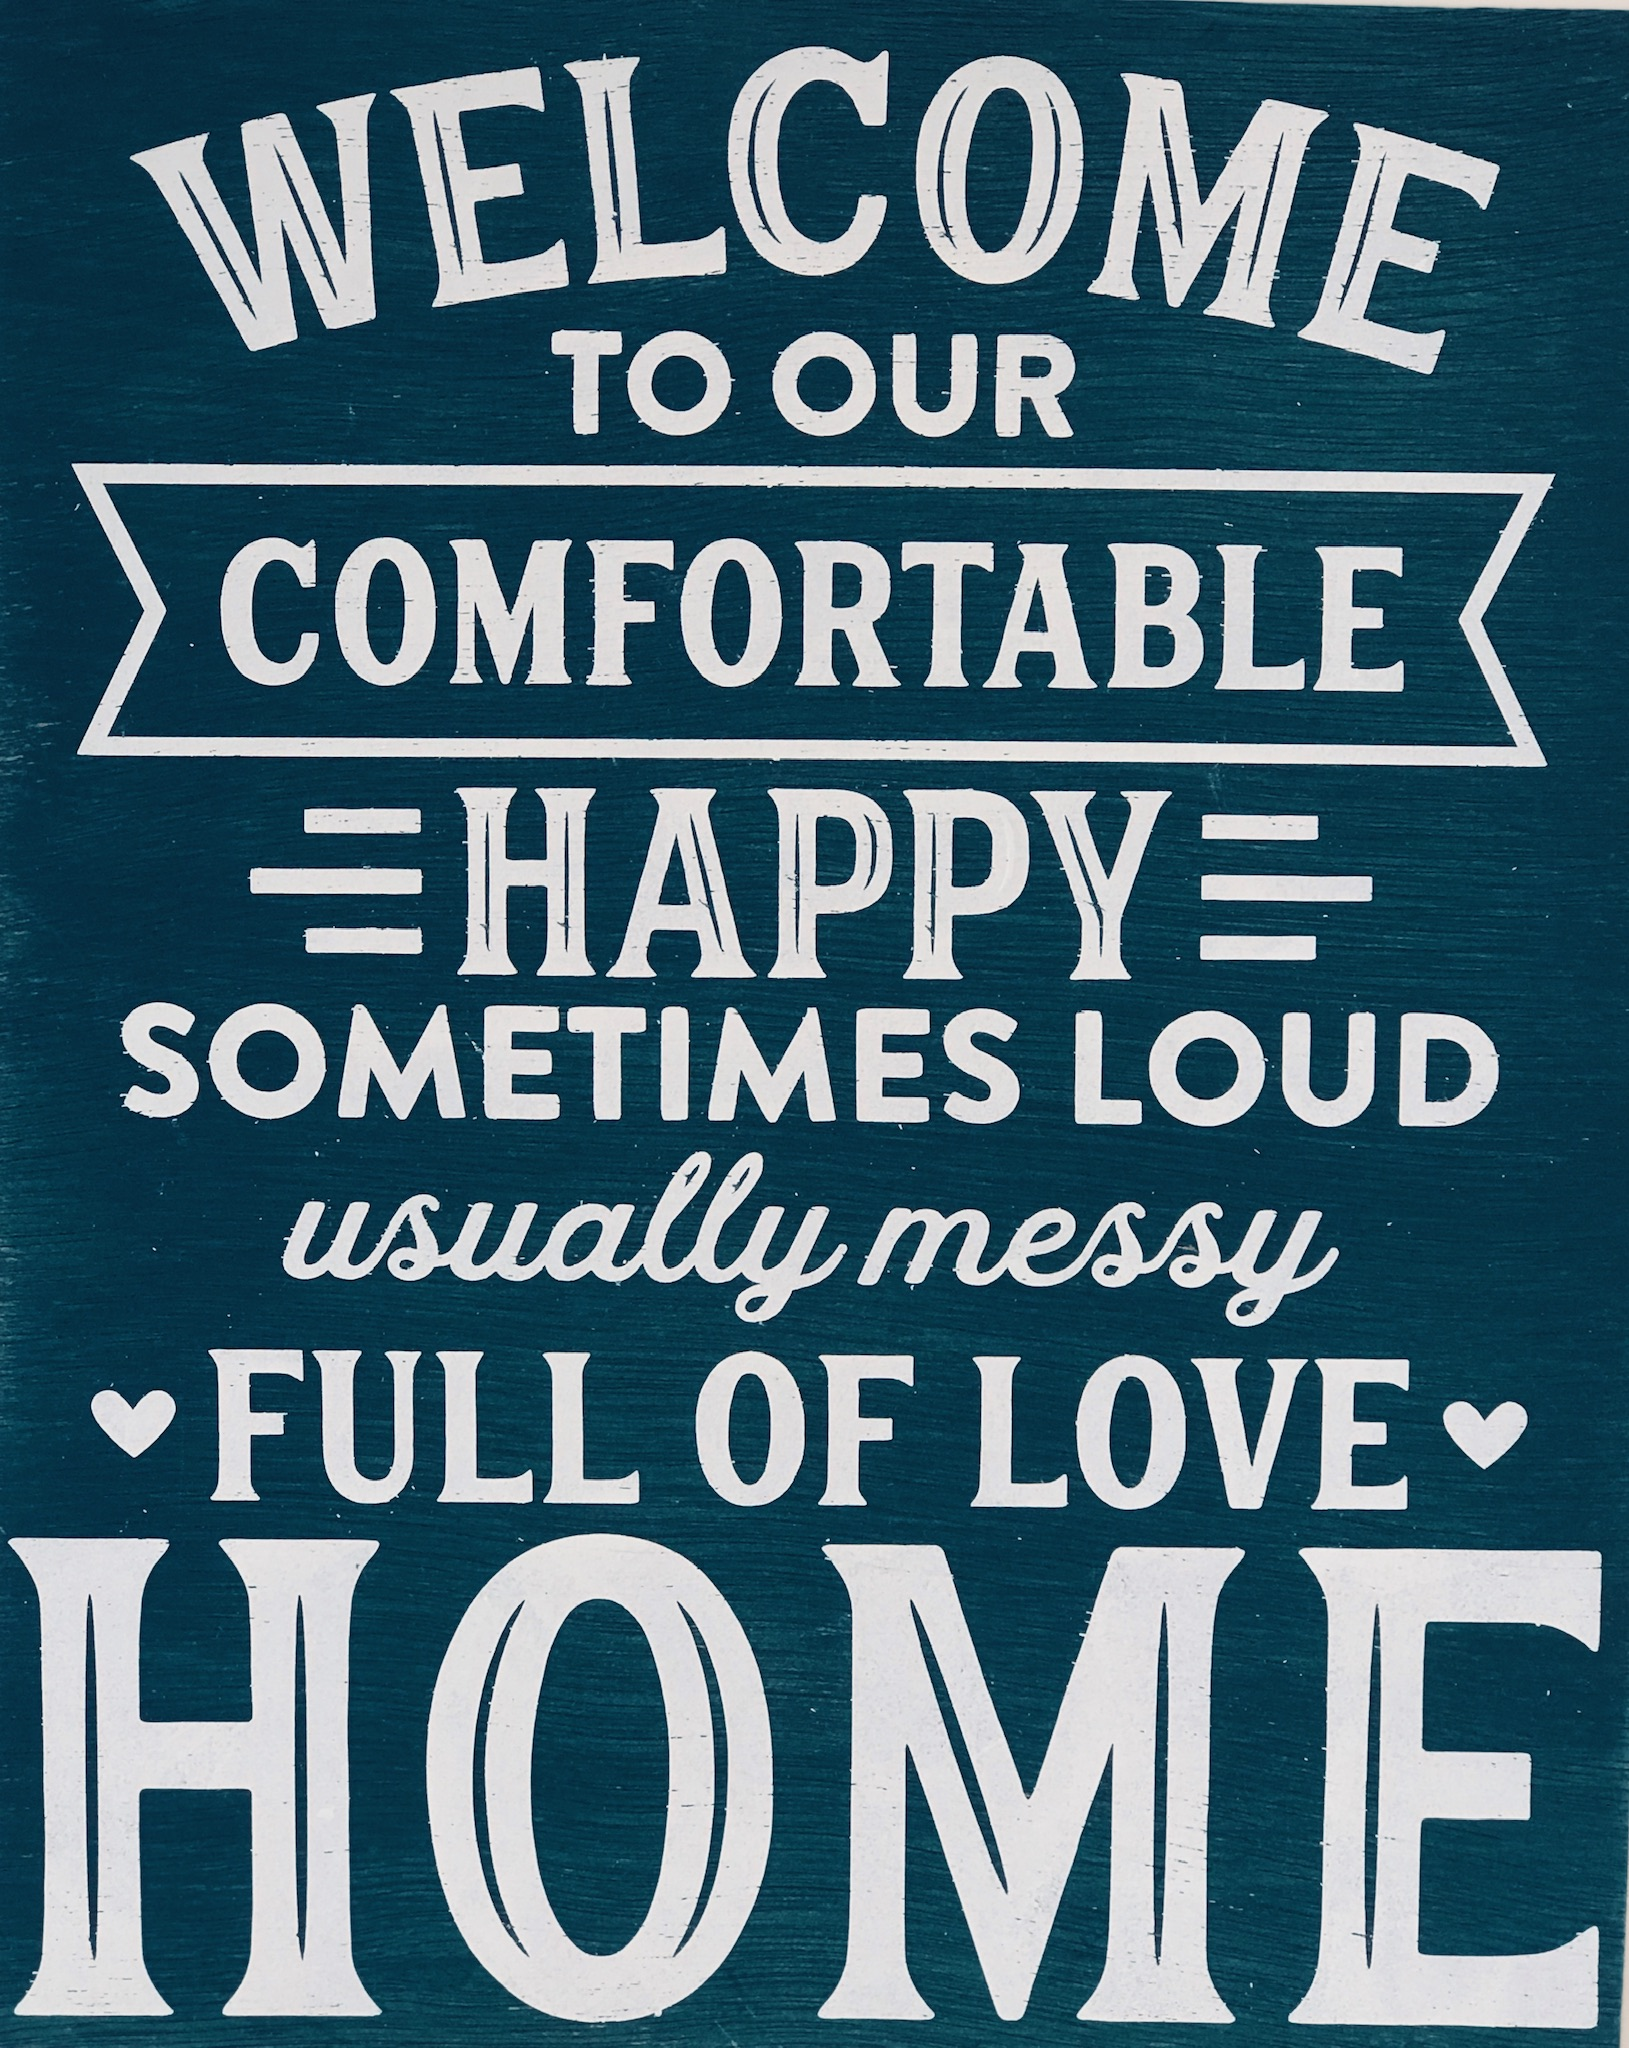 Full of Love Home